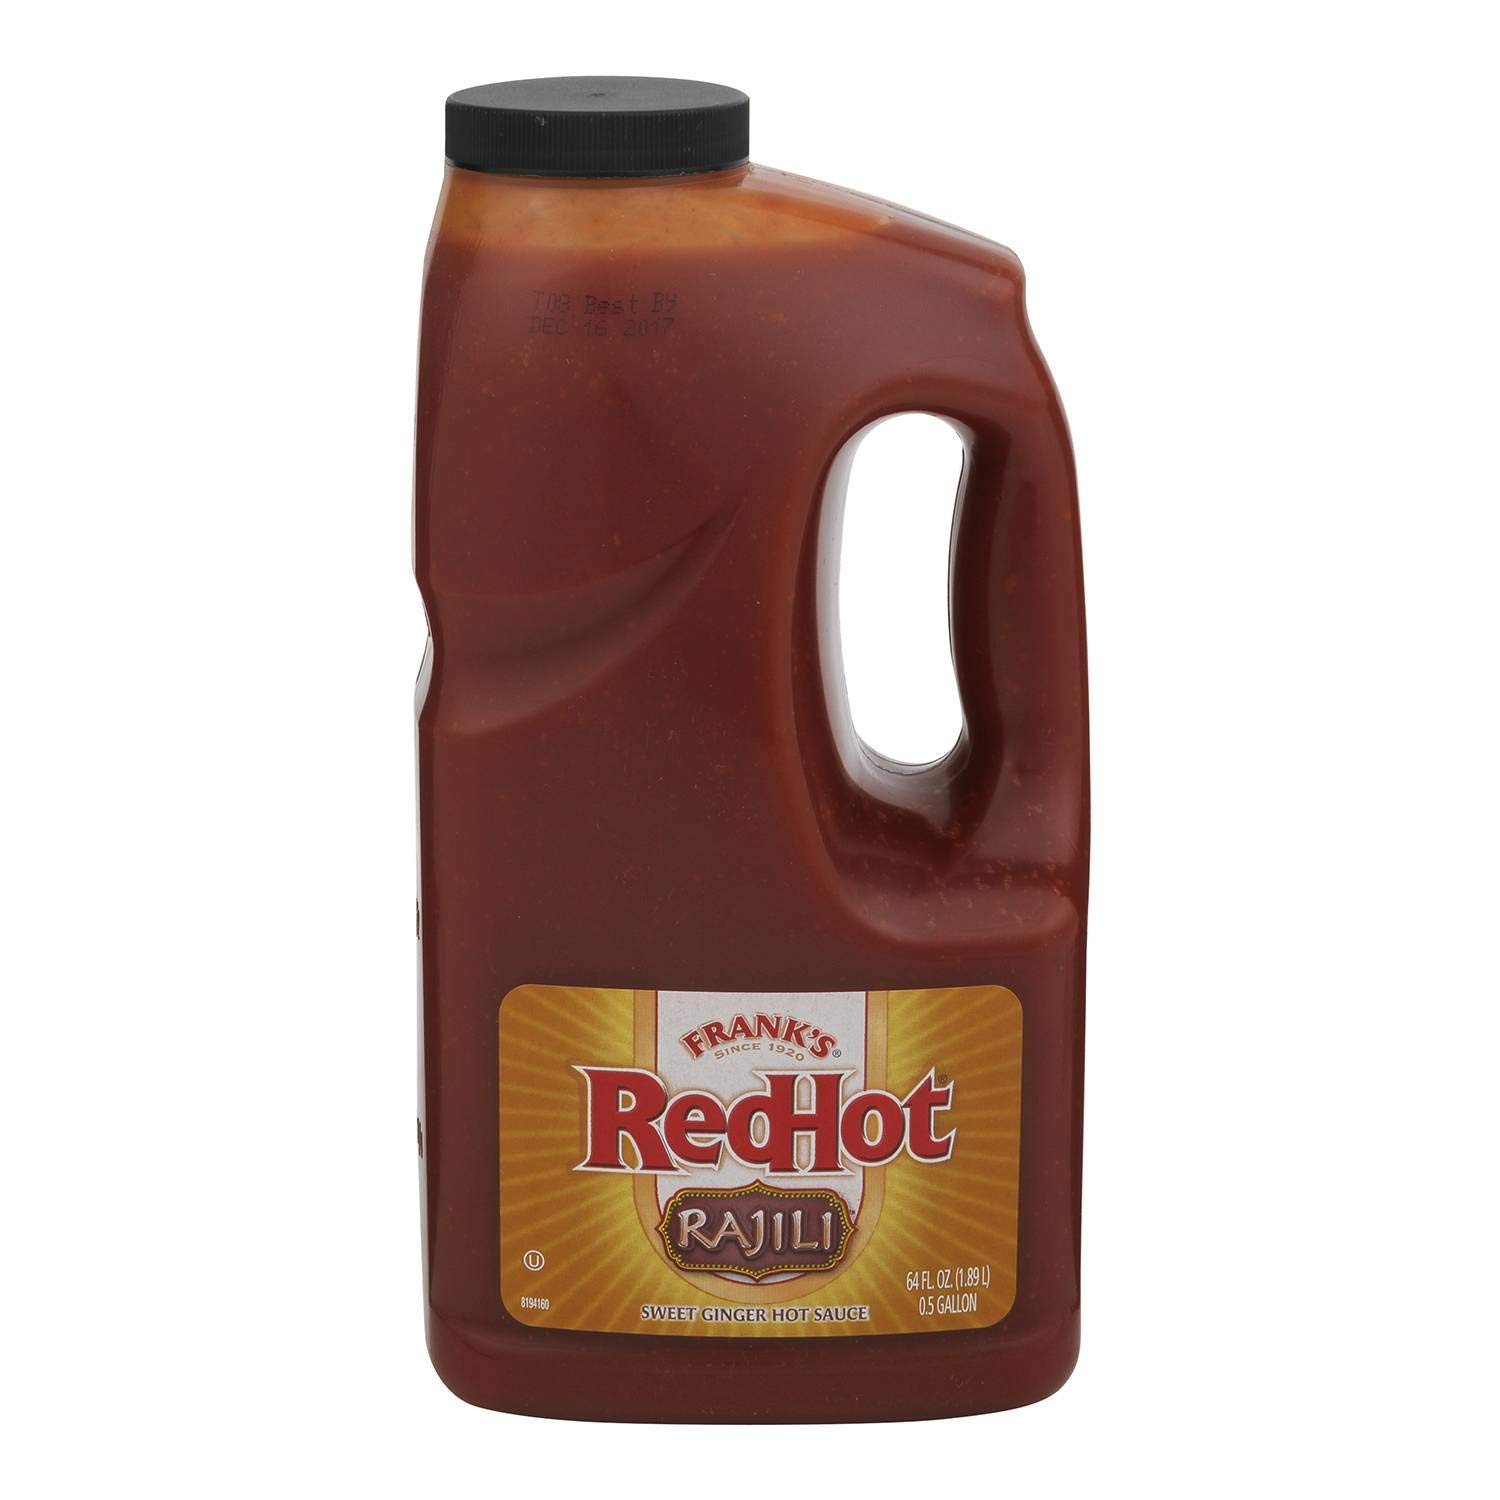 Franks RedHot Rajili Sweet Asian Ginger Sauce, 0.5 Gallon - 4 per case. by French's